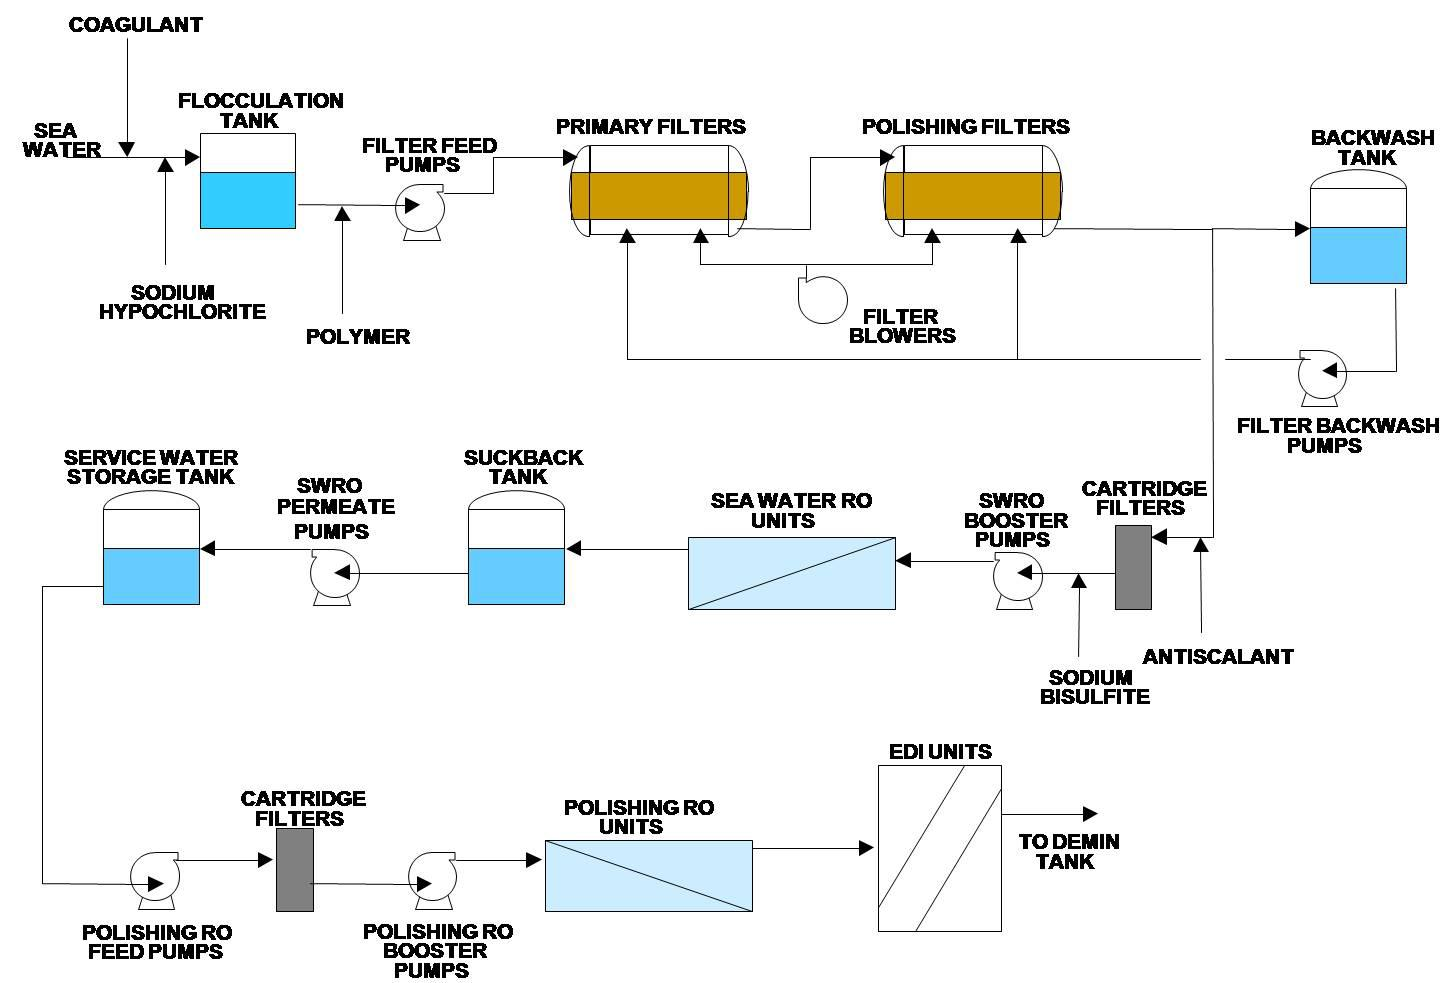 Cost Effective Boiler Makeup System Using Membrane Desalination For Power Plant In Dominican